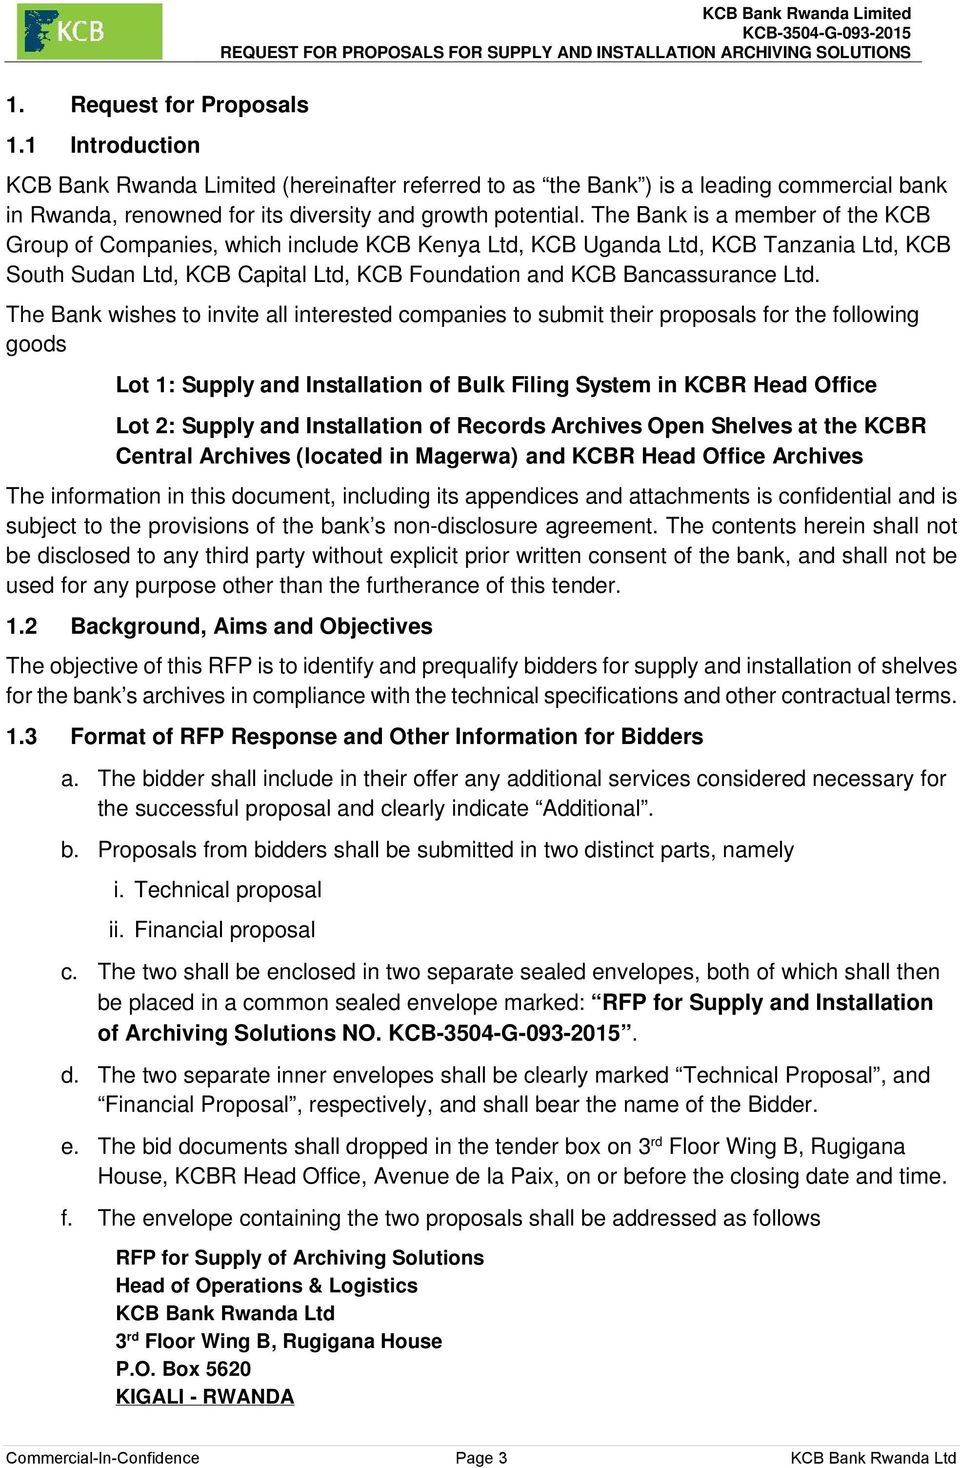 The Bank wishes to invite all interested companies to submit their proposals for the following goods Lot 1: Supply and Installation of Bulk Filing System in KCBR Head Office Lot 2: Supply and